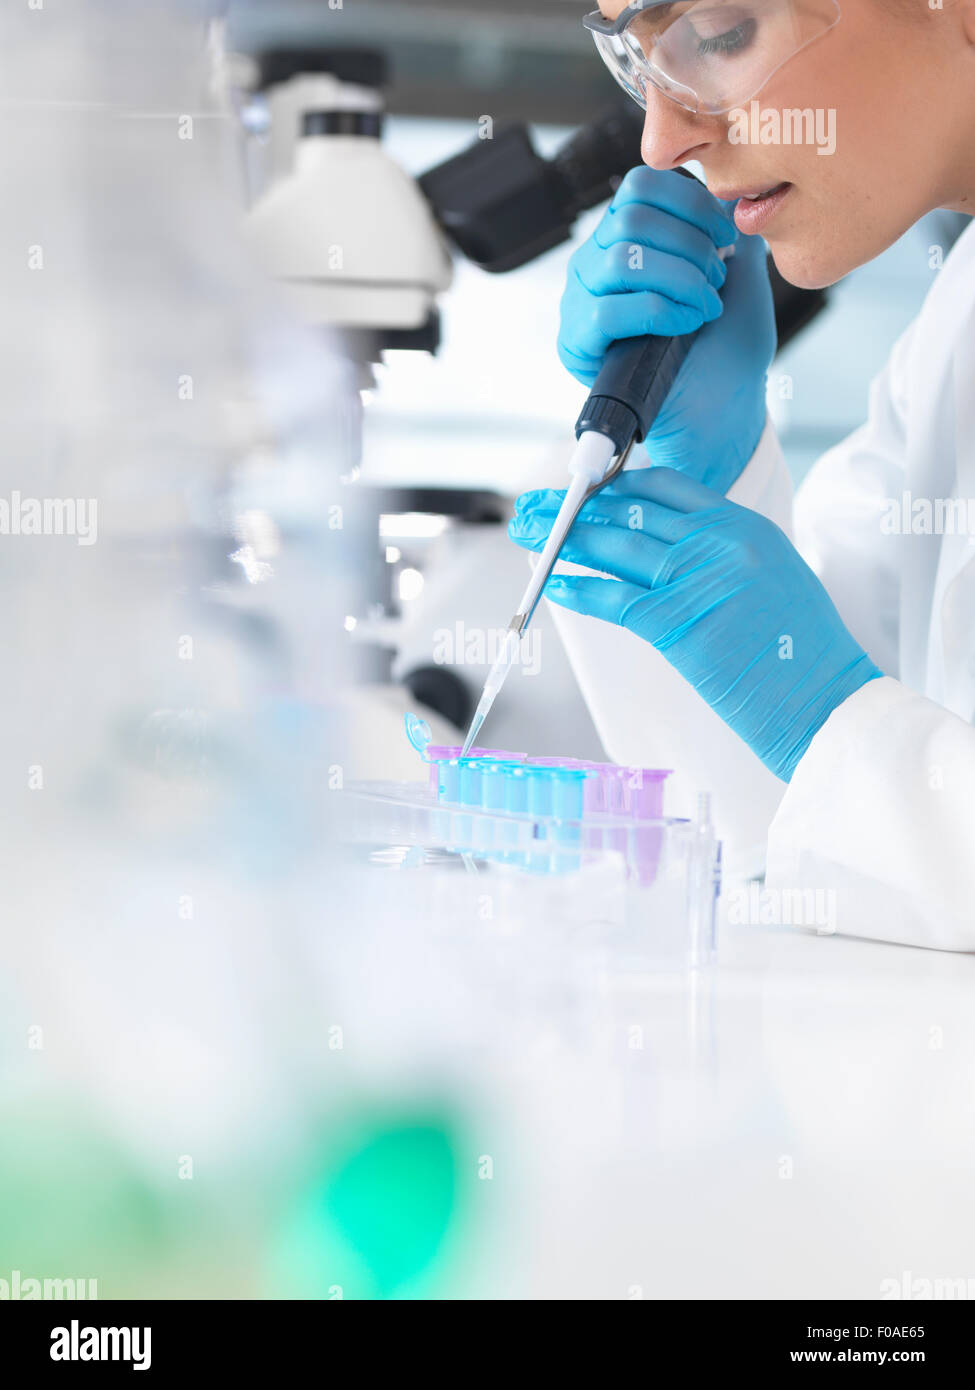 Female scientist pipetting sample into a vial for analytical testing in a laboratory - Stock Image